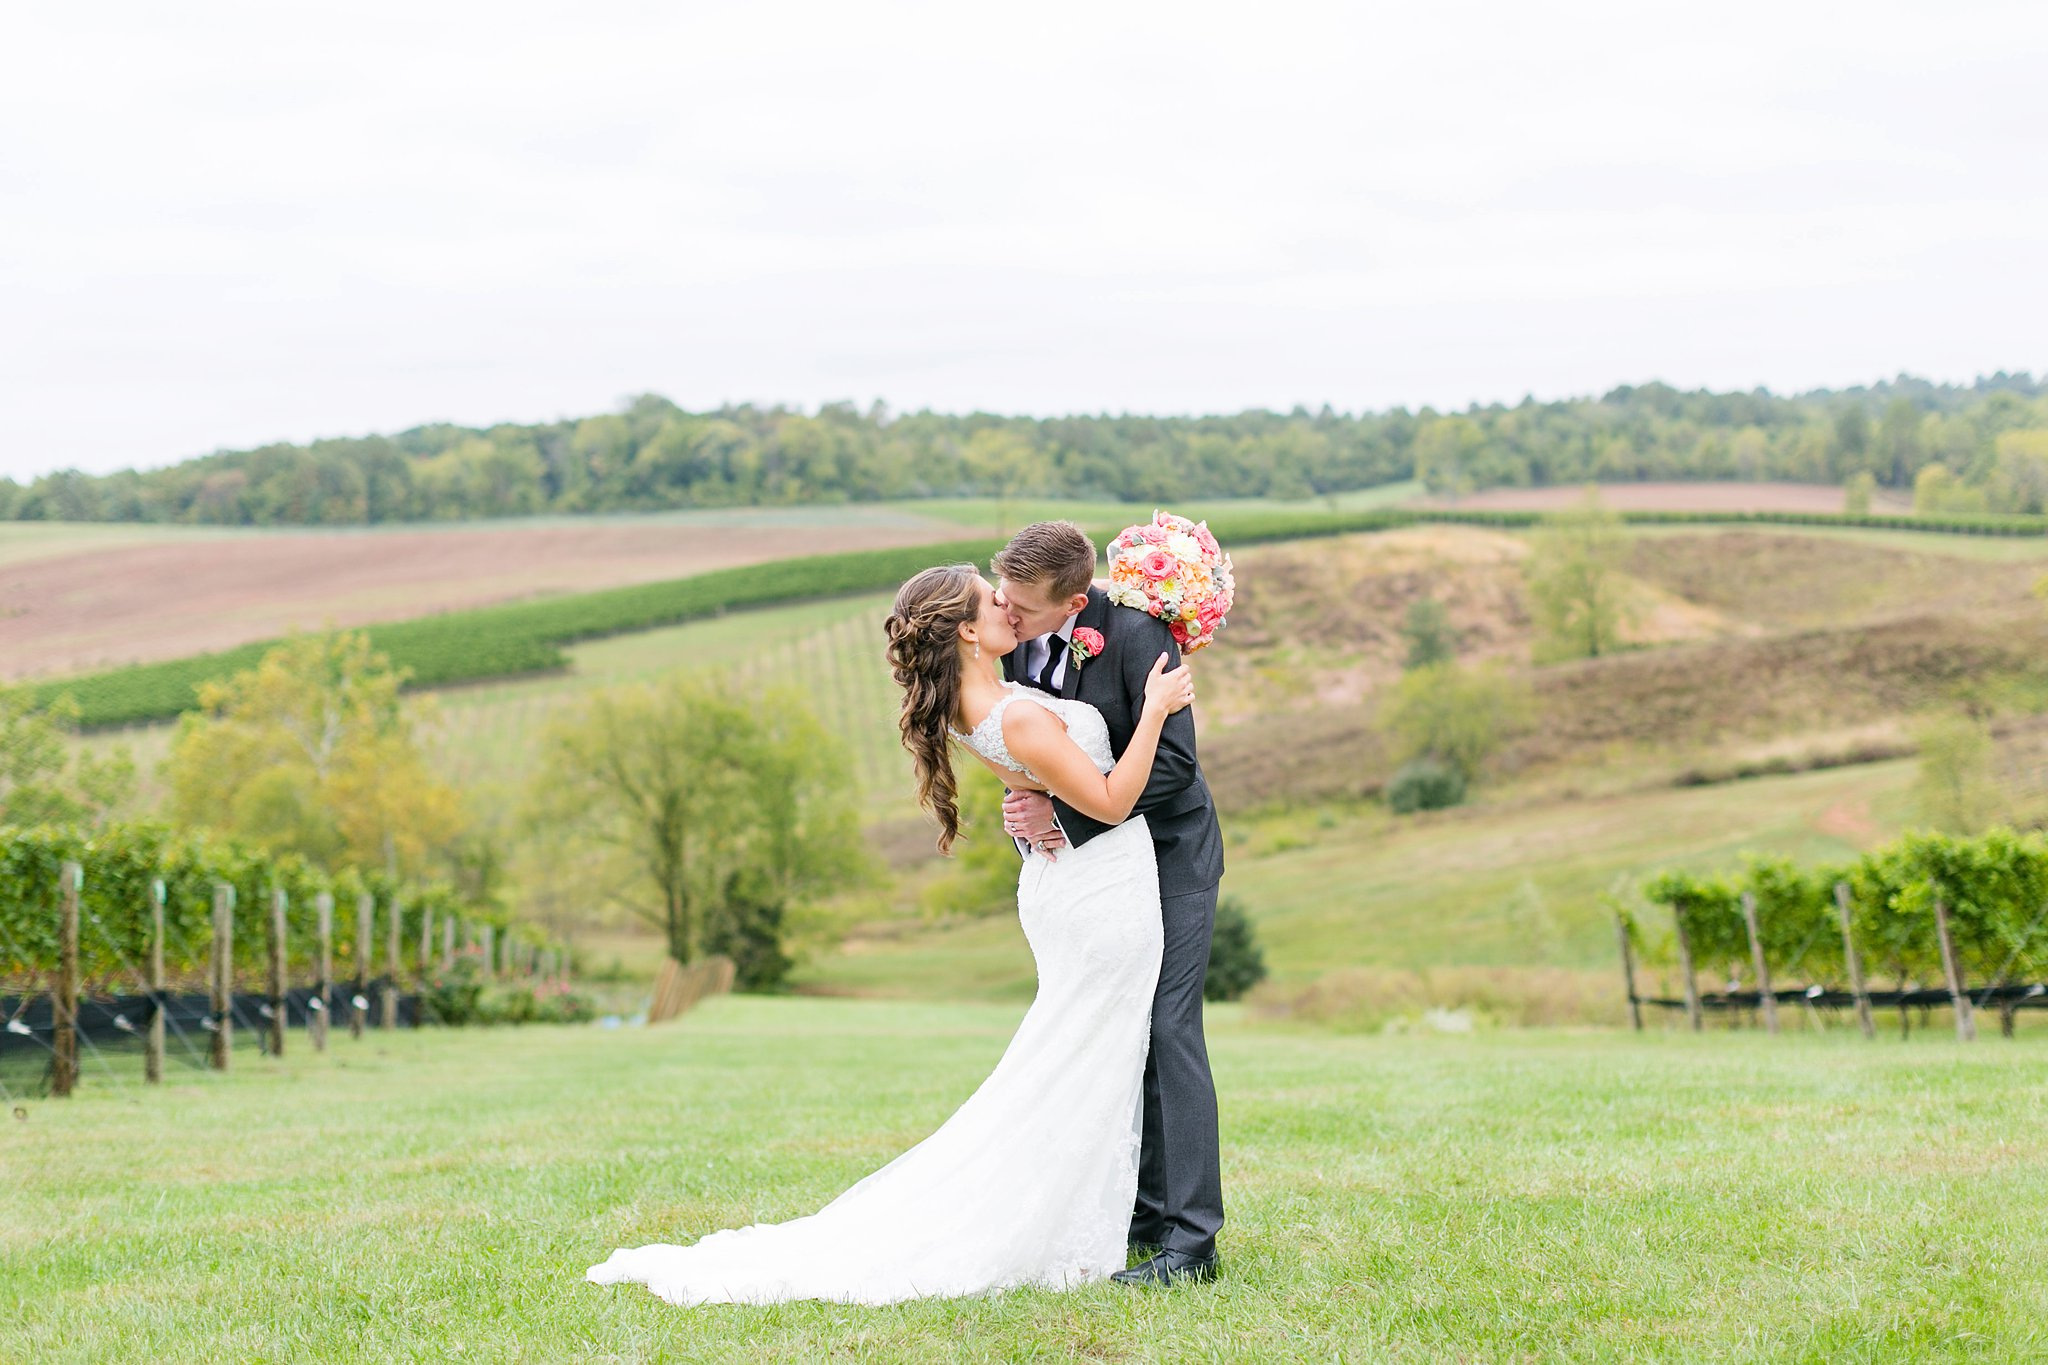 Stone Tower Winery Wedding Photos Virginia Wedding Photographer Megan Kelsey Photography Sam & Angela-234.jpg